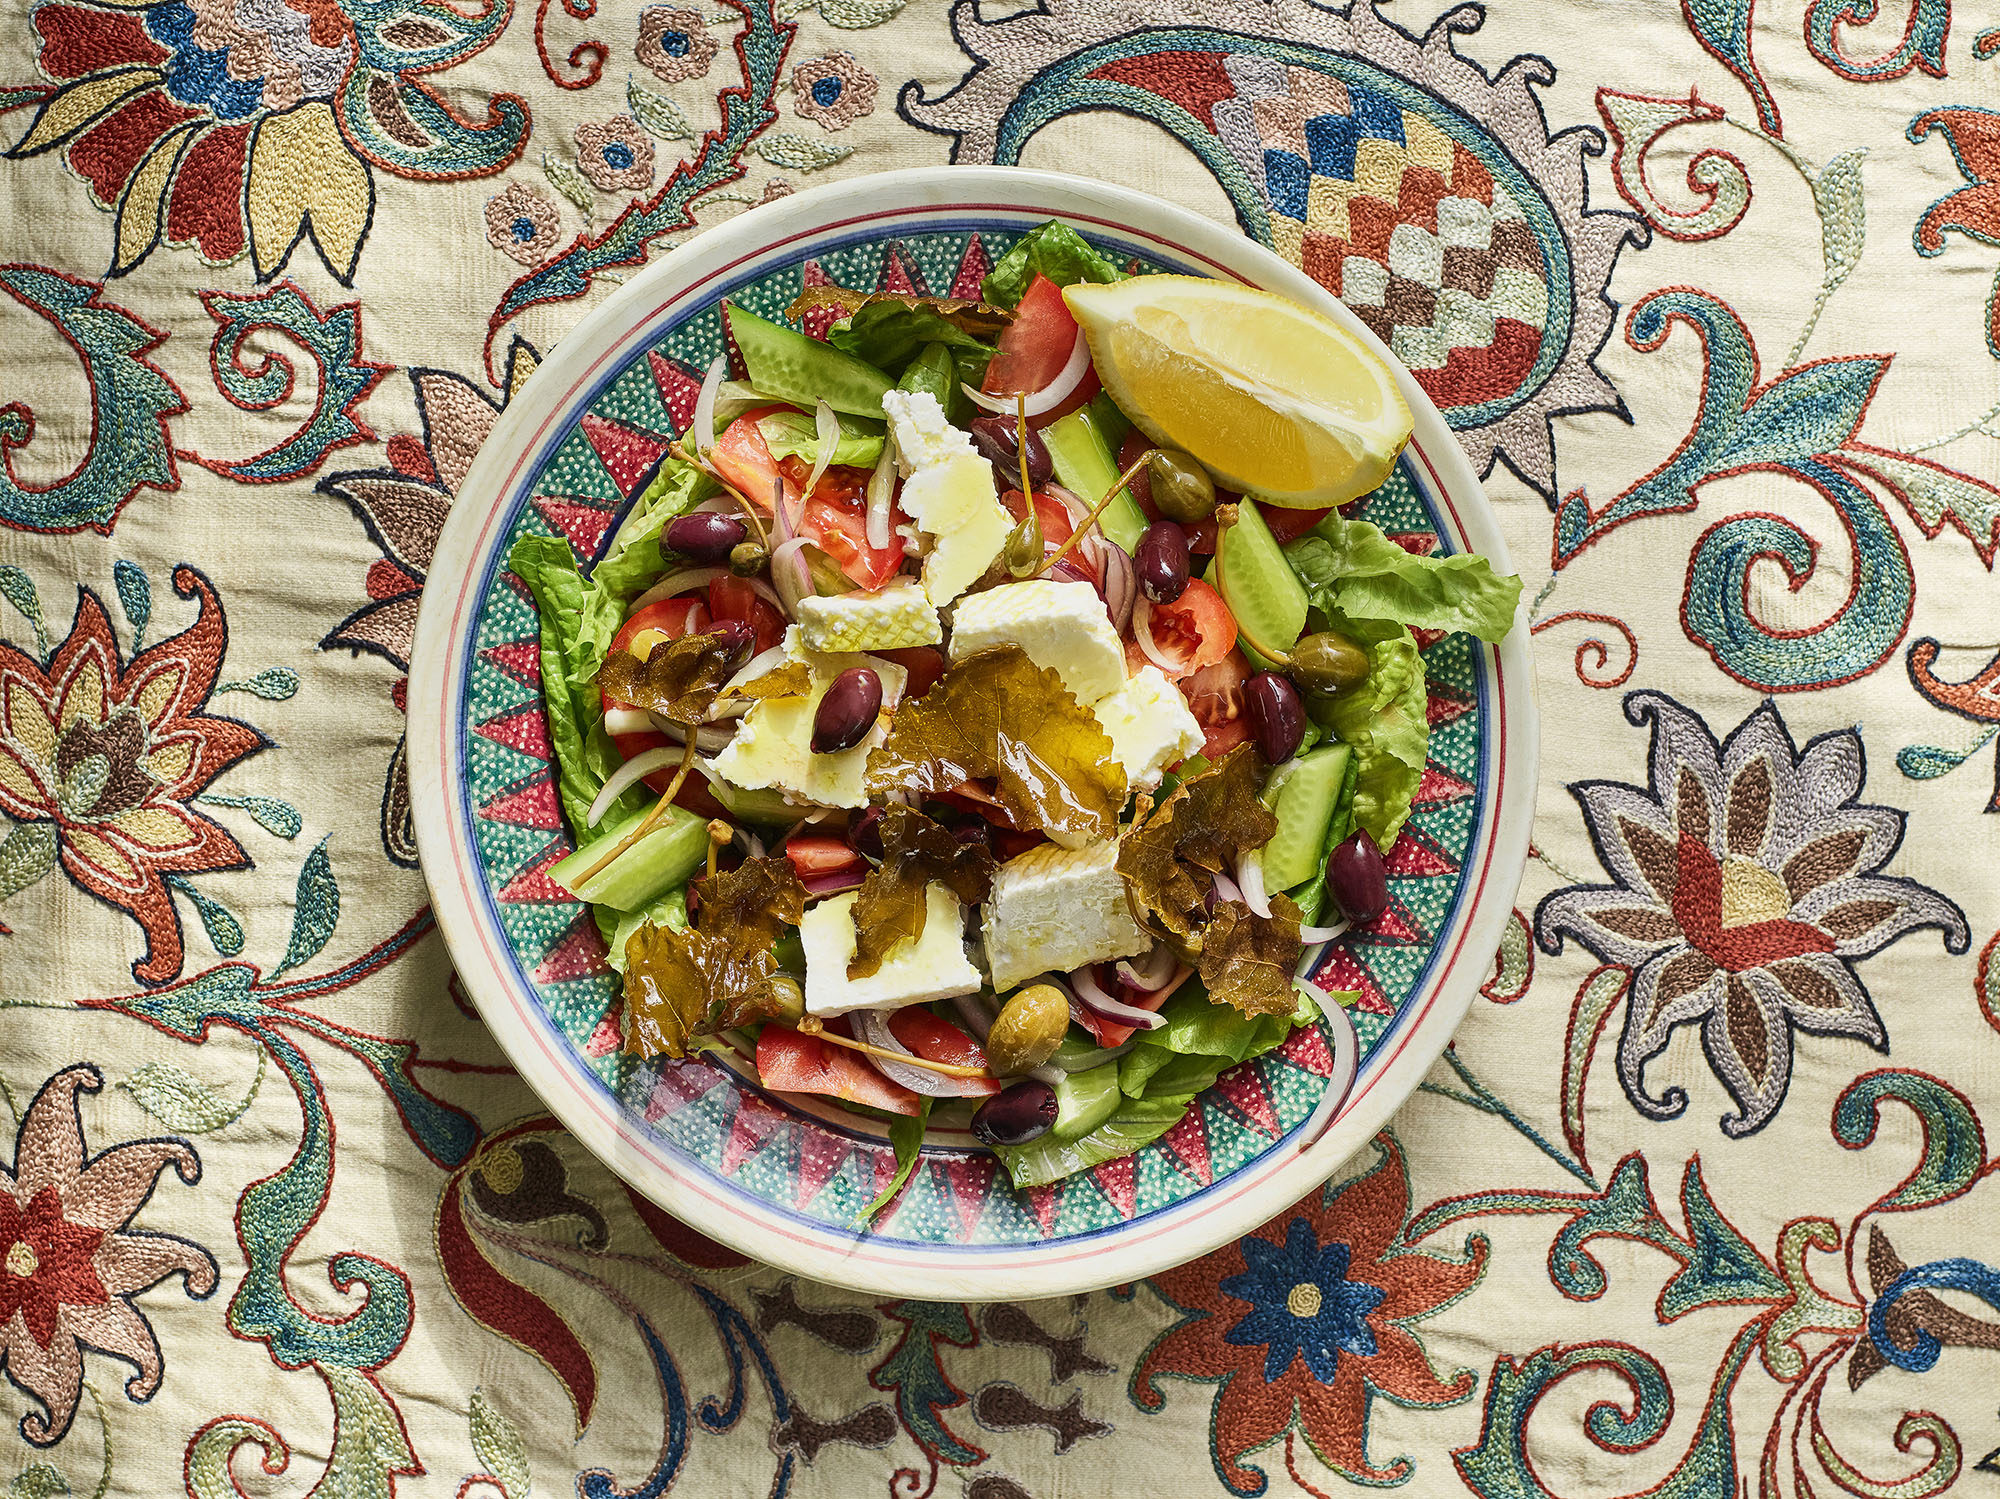 Nechama Rivlin's salad with lettuce, grape leaves, tomatoes, olives and lemon in a ceramic bowl